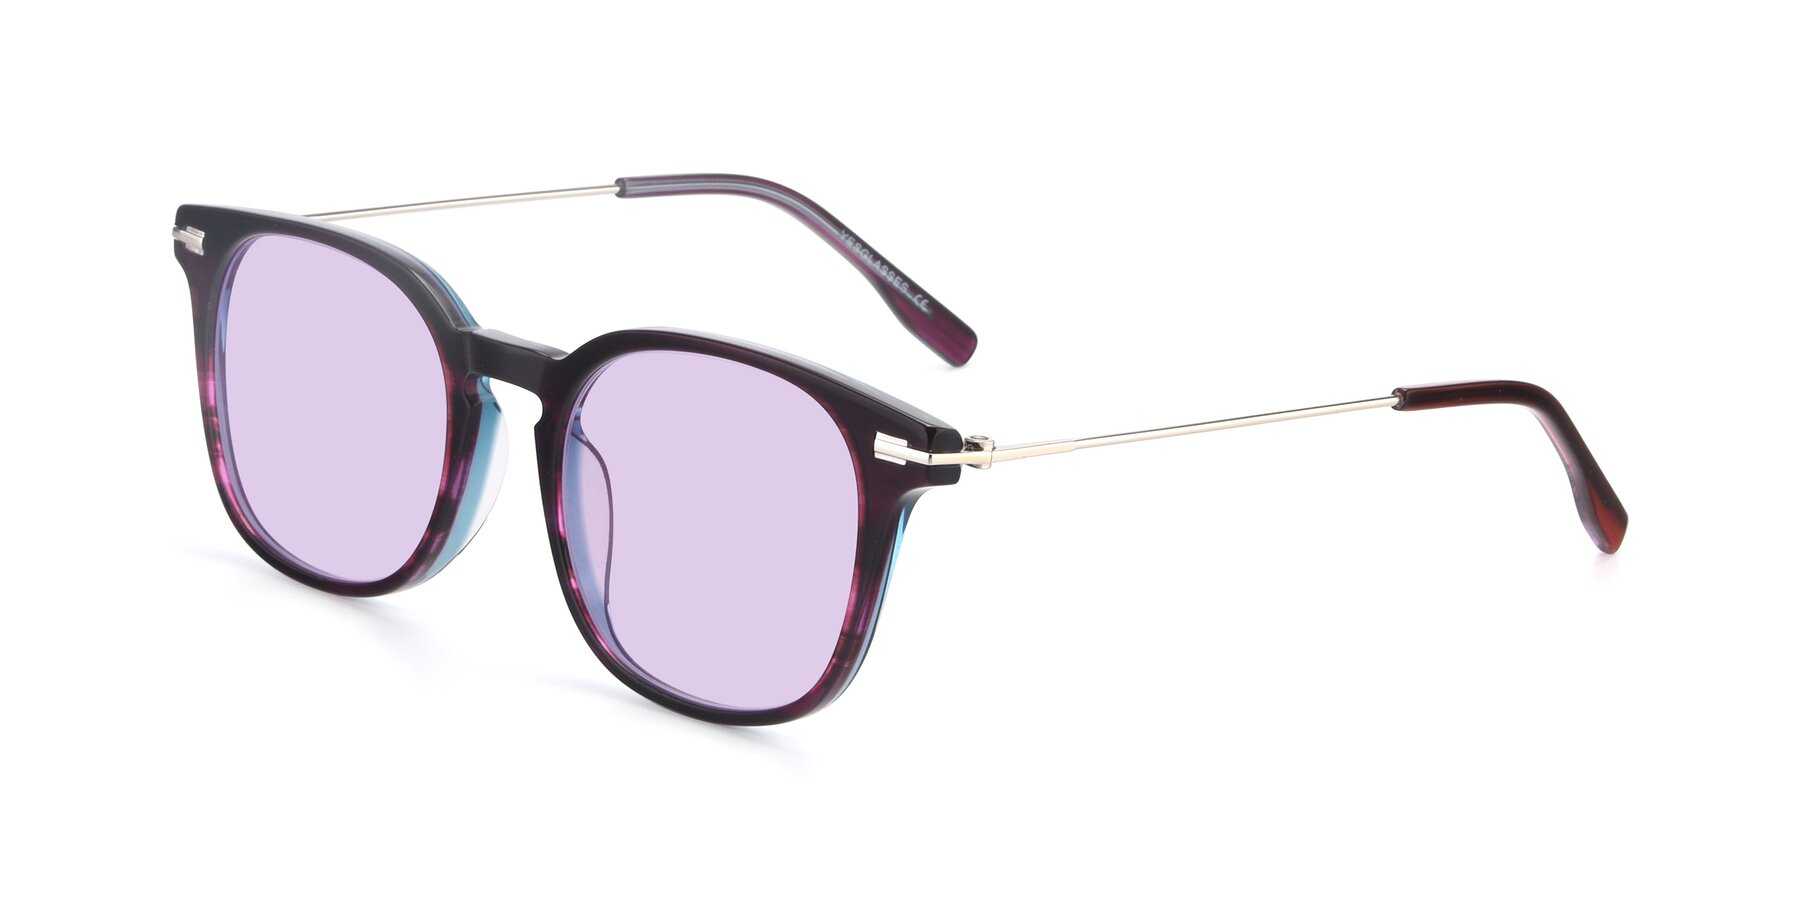 Angle of 17711 in Dark Purple with Light Purple Tinted Lenses